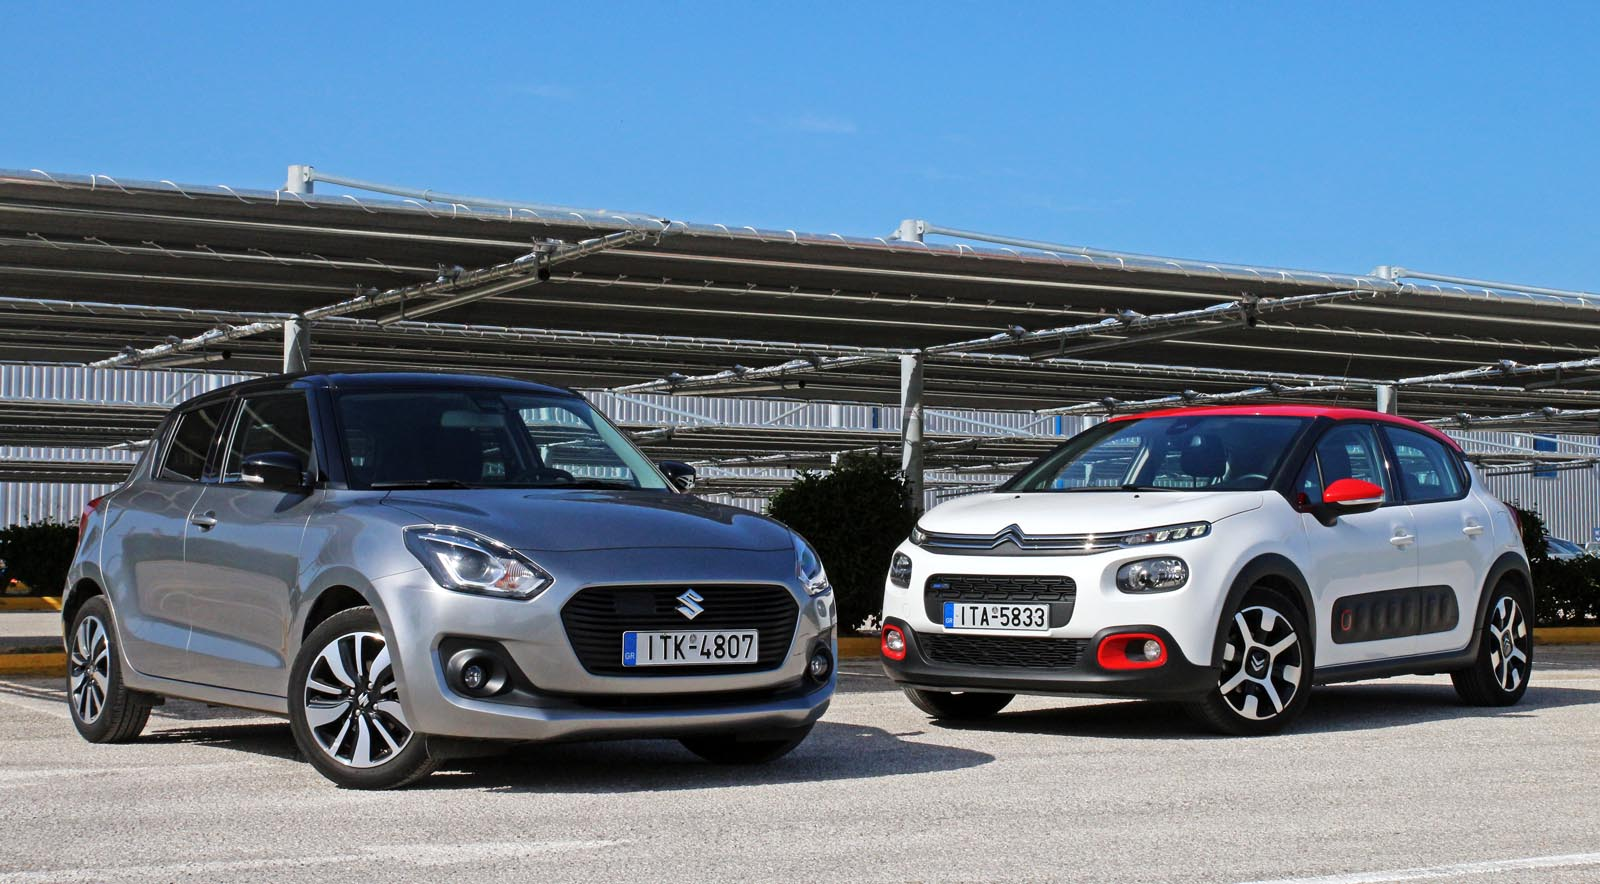 Photo of Citroen C3 1.2 110 PS vs Suzuki Swift 1.2 Hybrid [test drive]